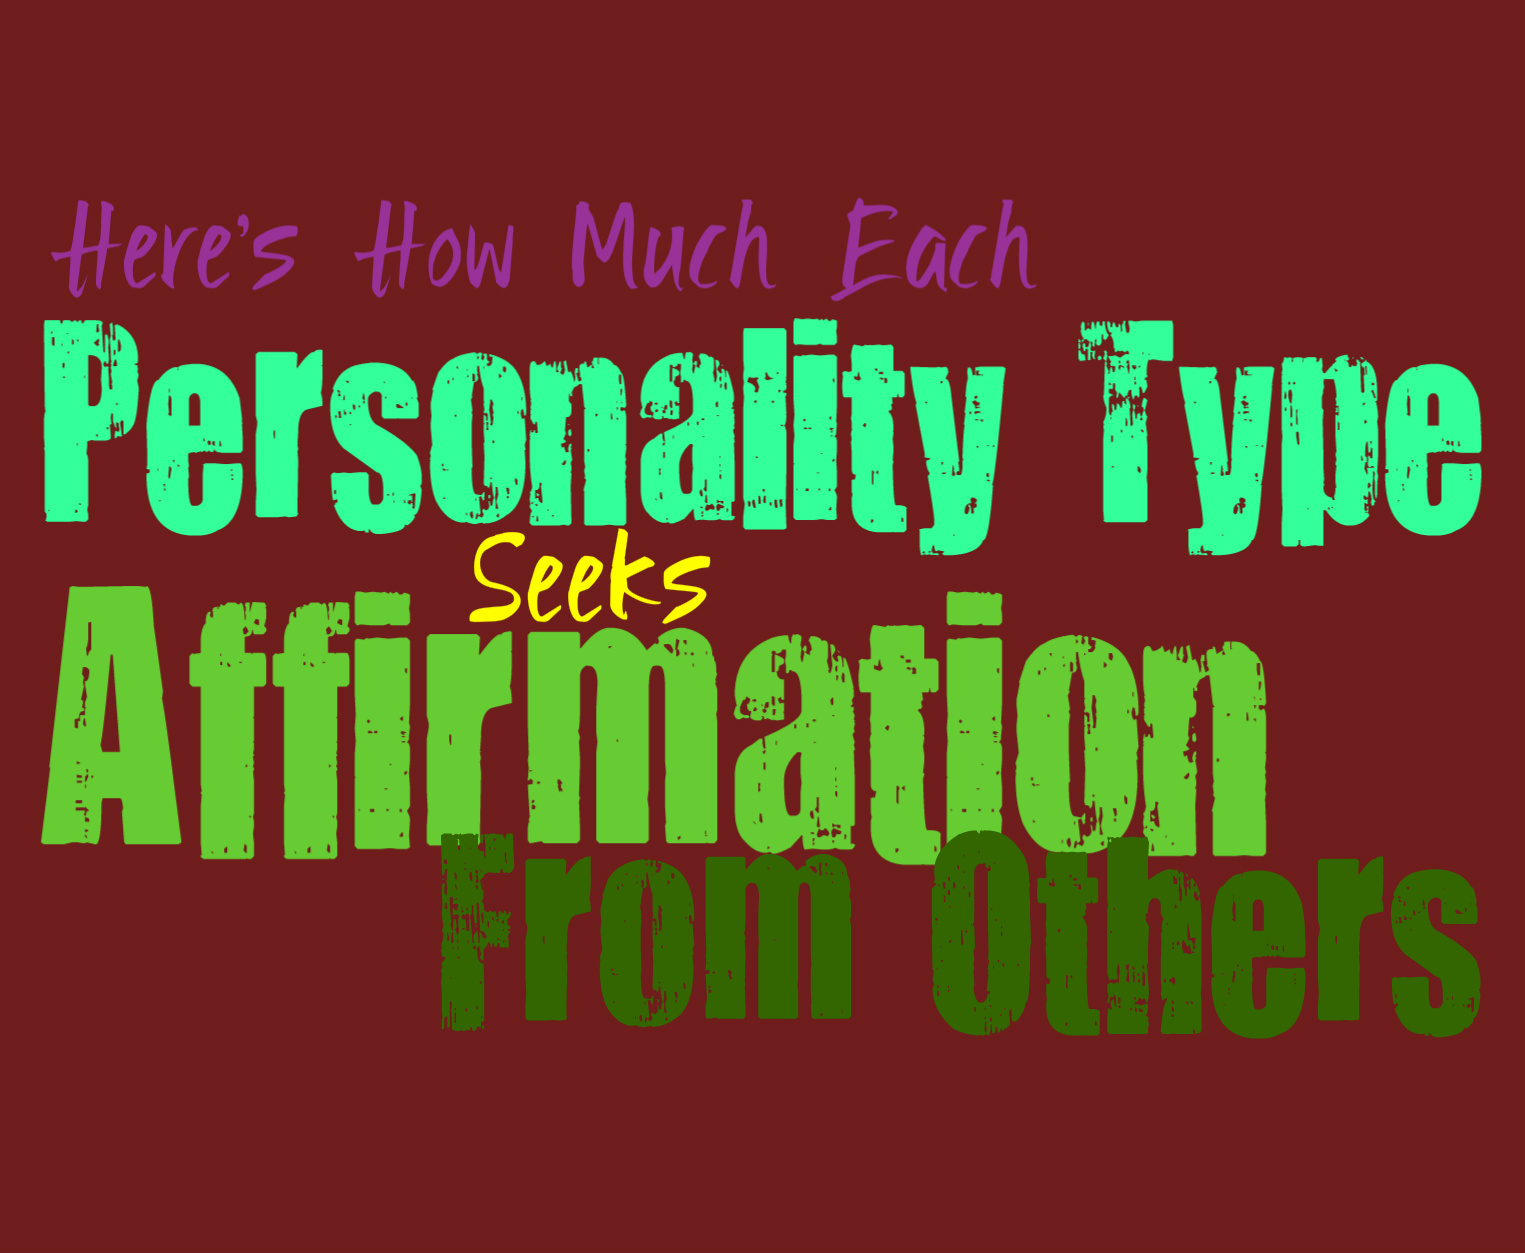 Here's How Much Each Personality Type Seeks Affirmation From Others